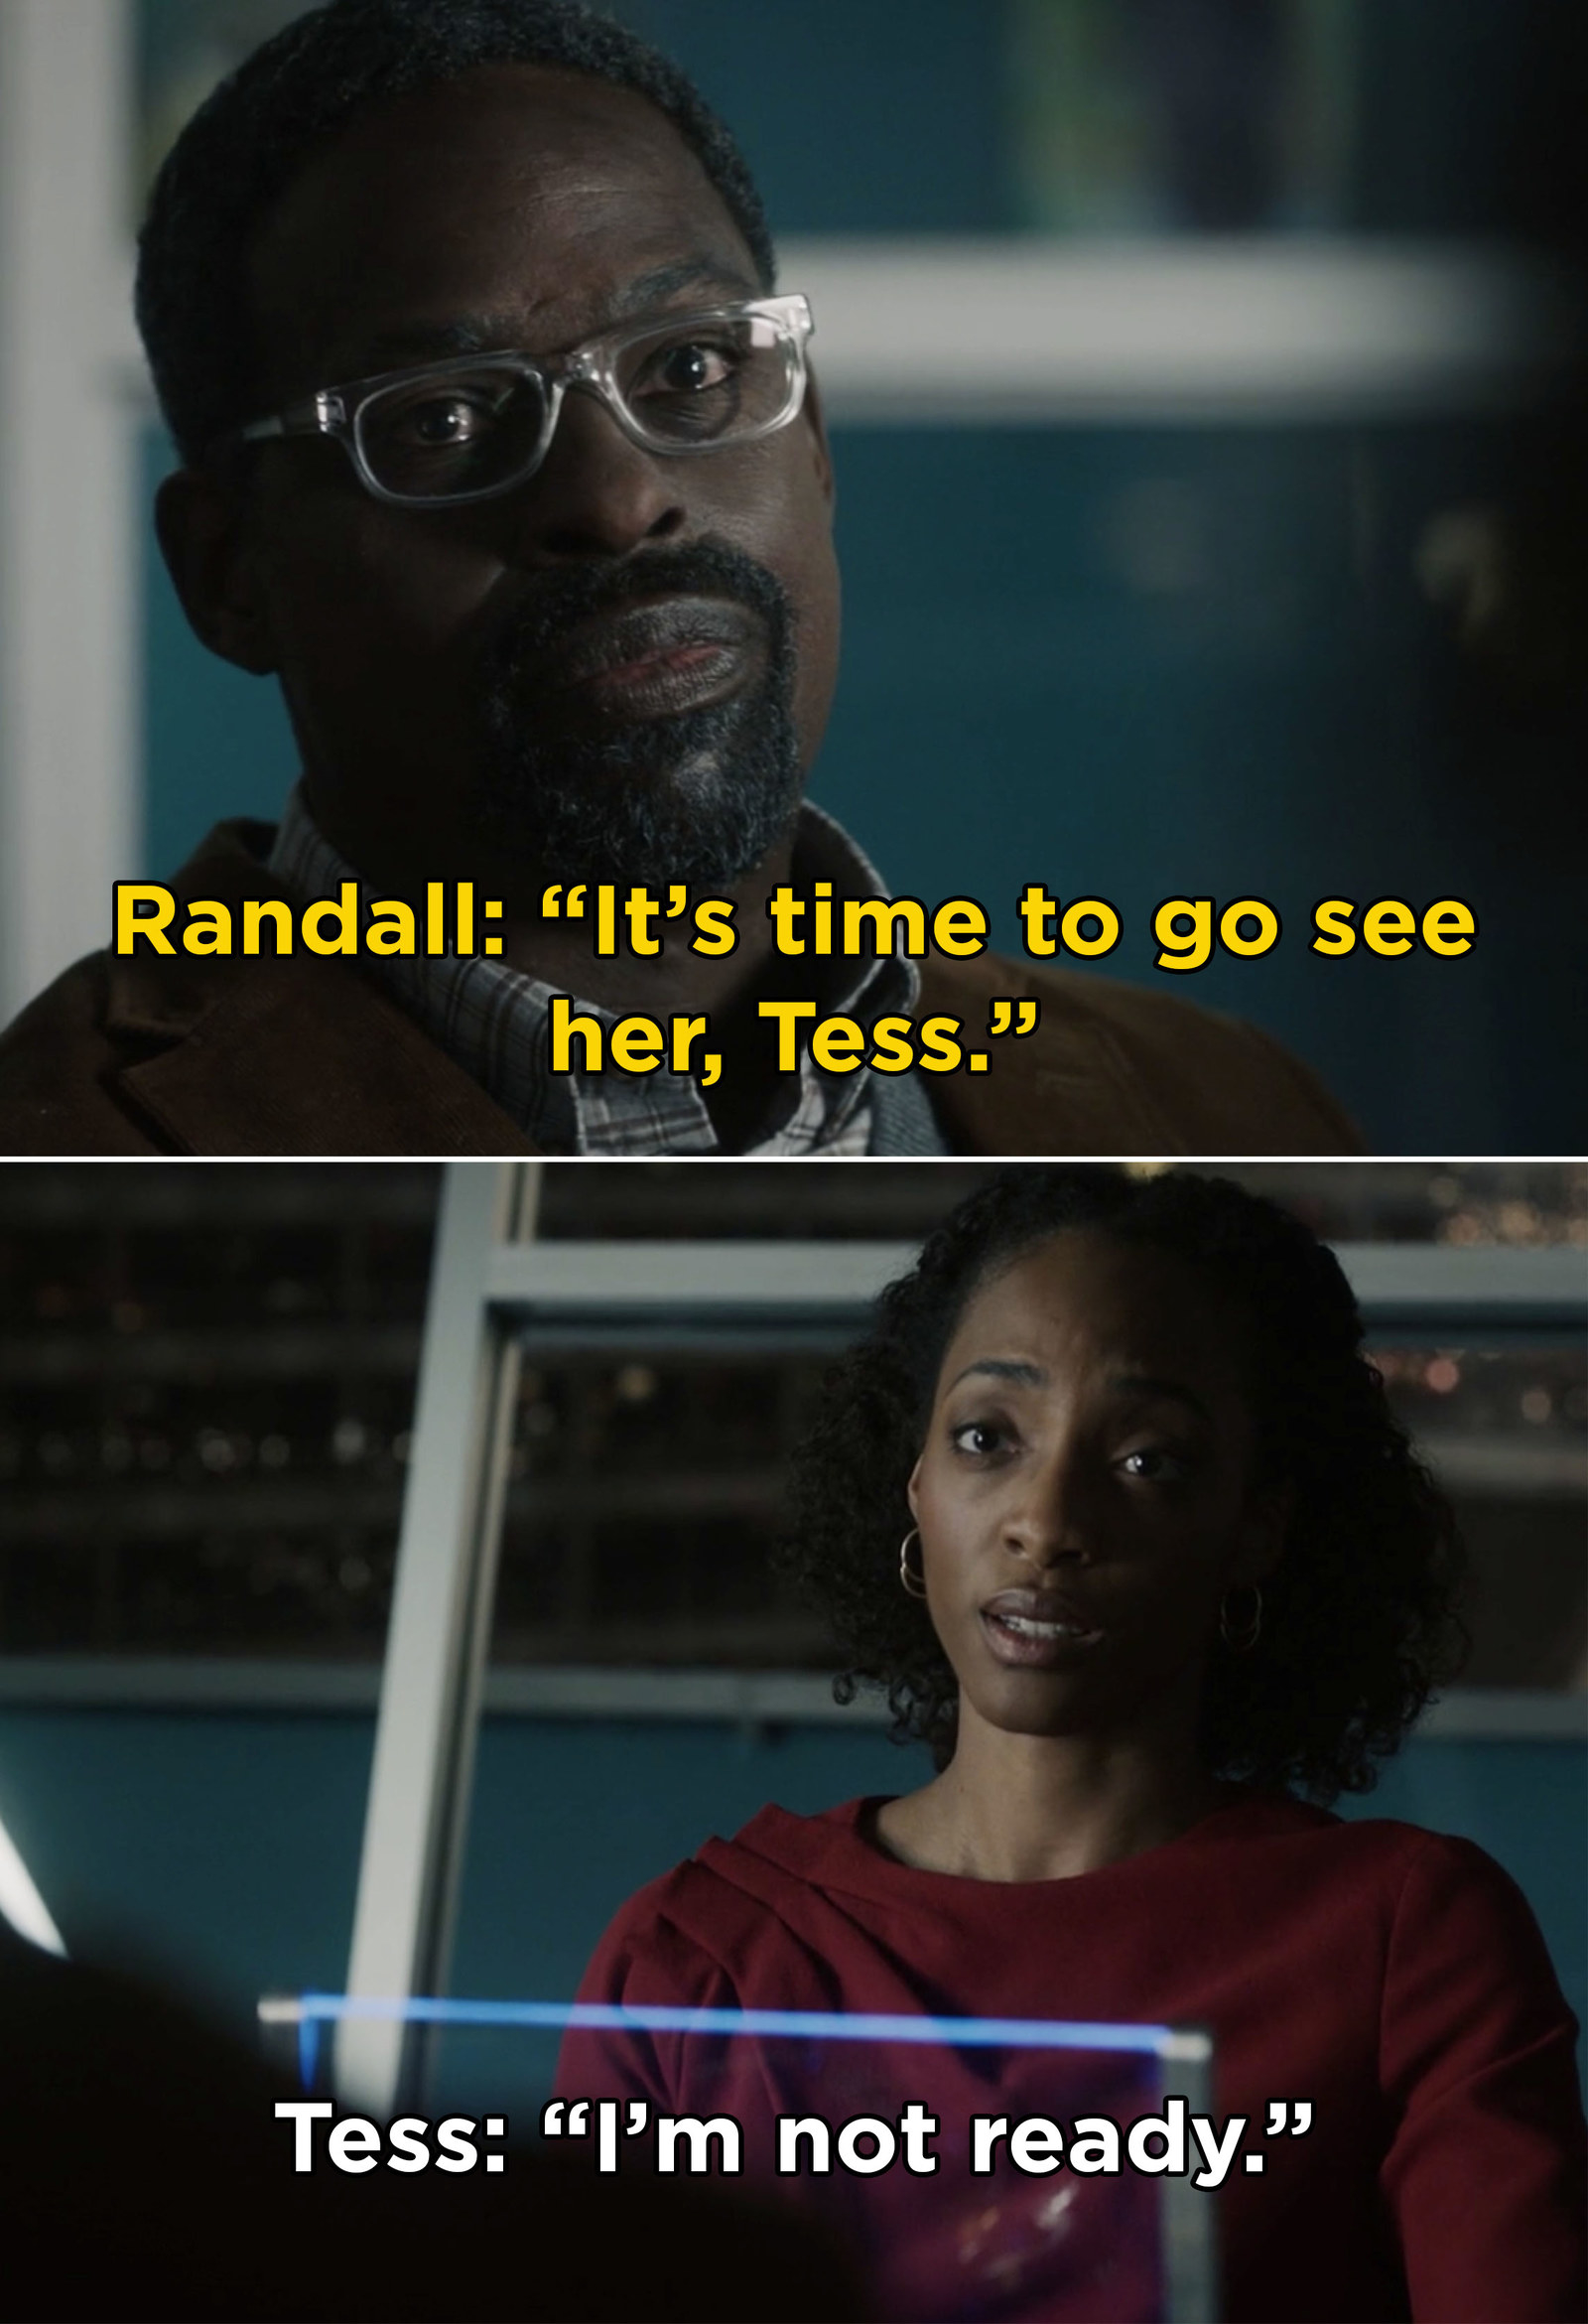 """This Is Us  also surprised us when the show jumped forward in time to reveal an older Tess, Randall, and a mysterious """"her"""" that they were going to visit."""